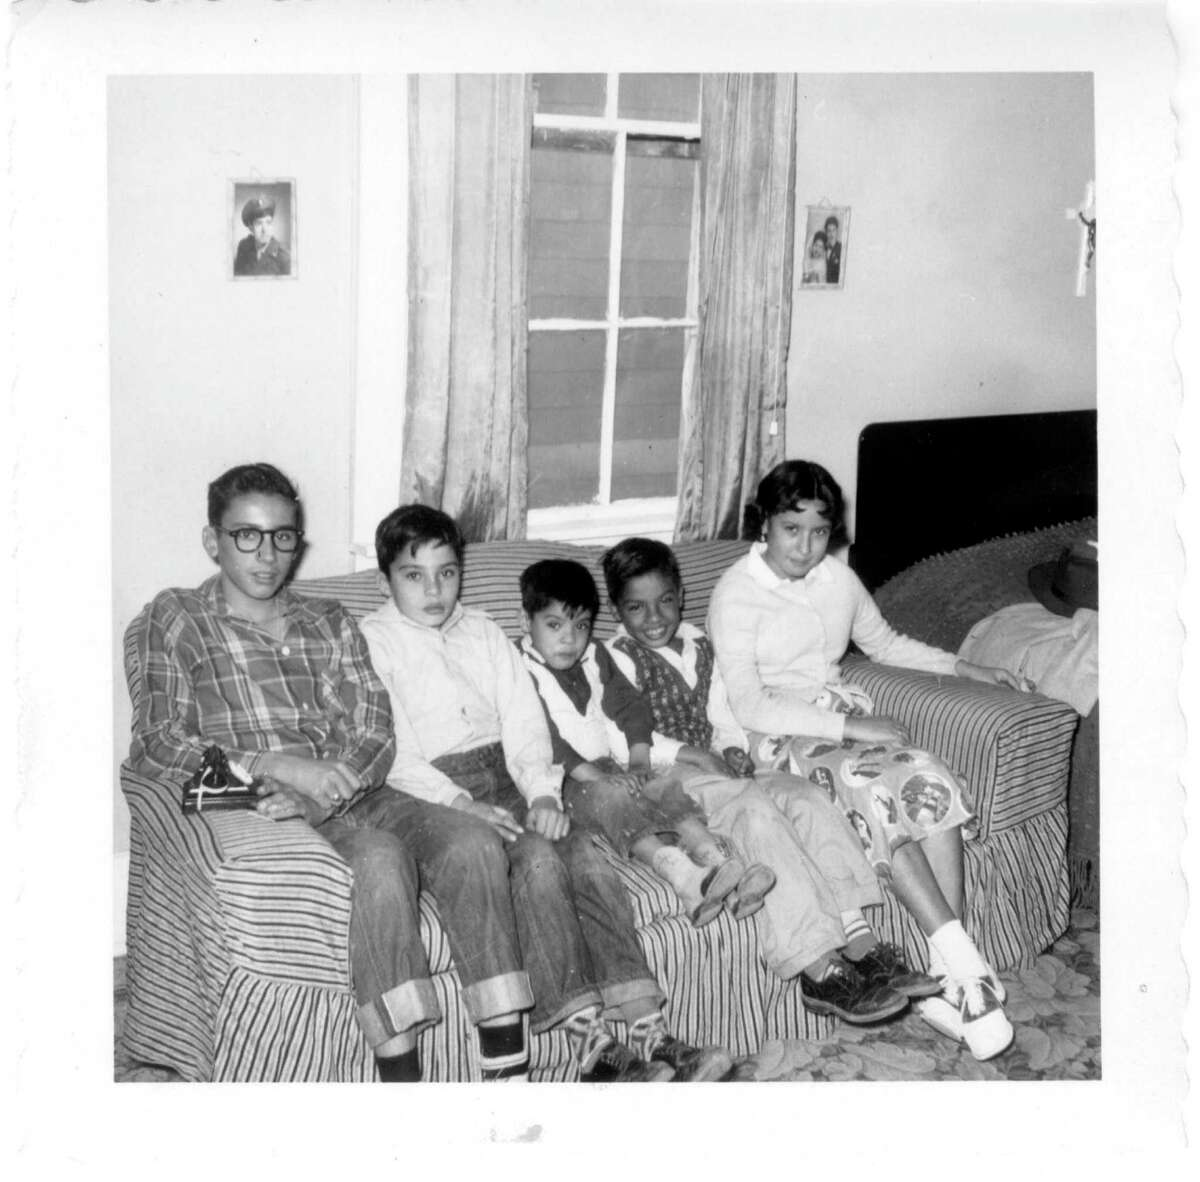 Then: In 1953, the Carter children took this photo in their grandparents' Eagle Pass home. They are (from left): William(12), Mario(8), Edward(3), Robert(6), and Irma Carter(10).